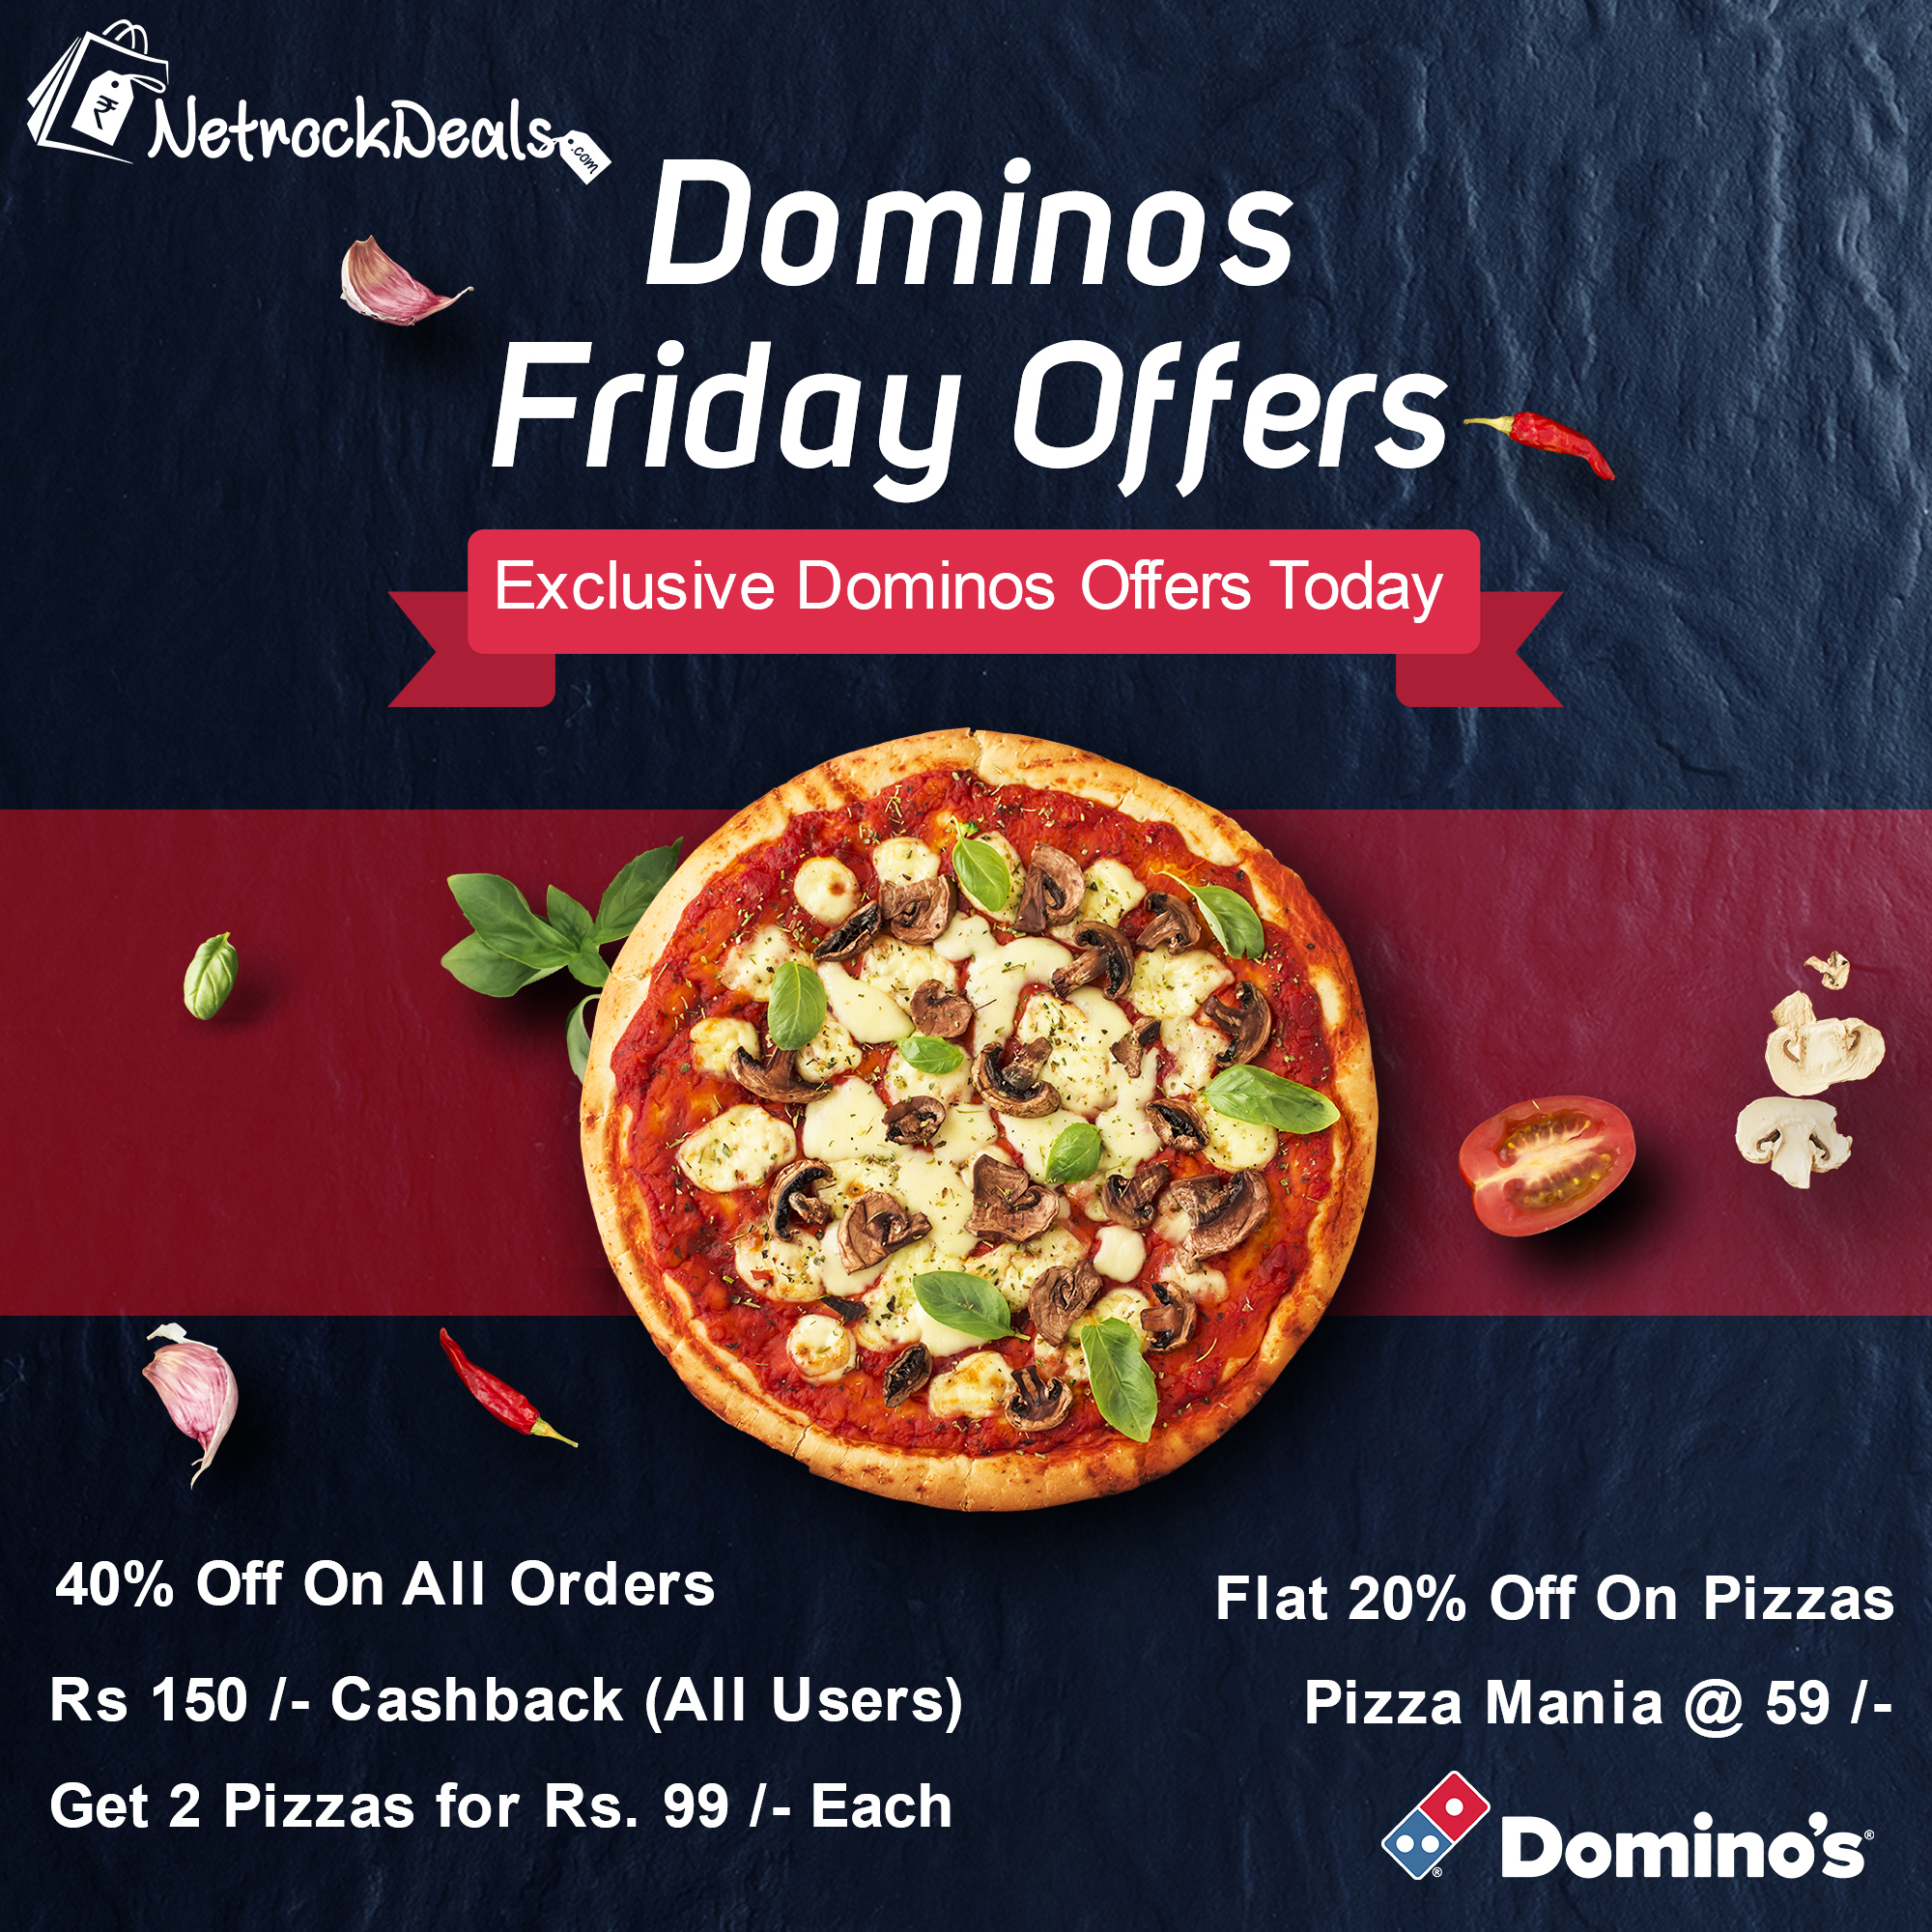 Dominos friday offers